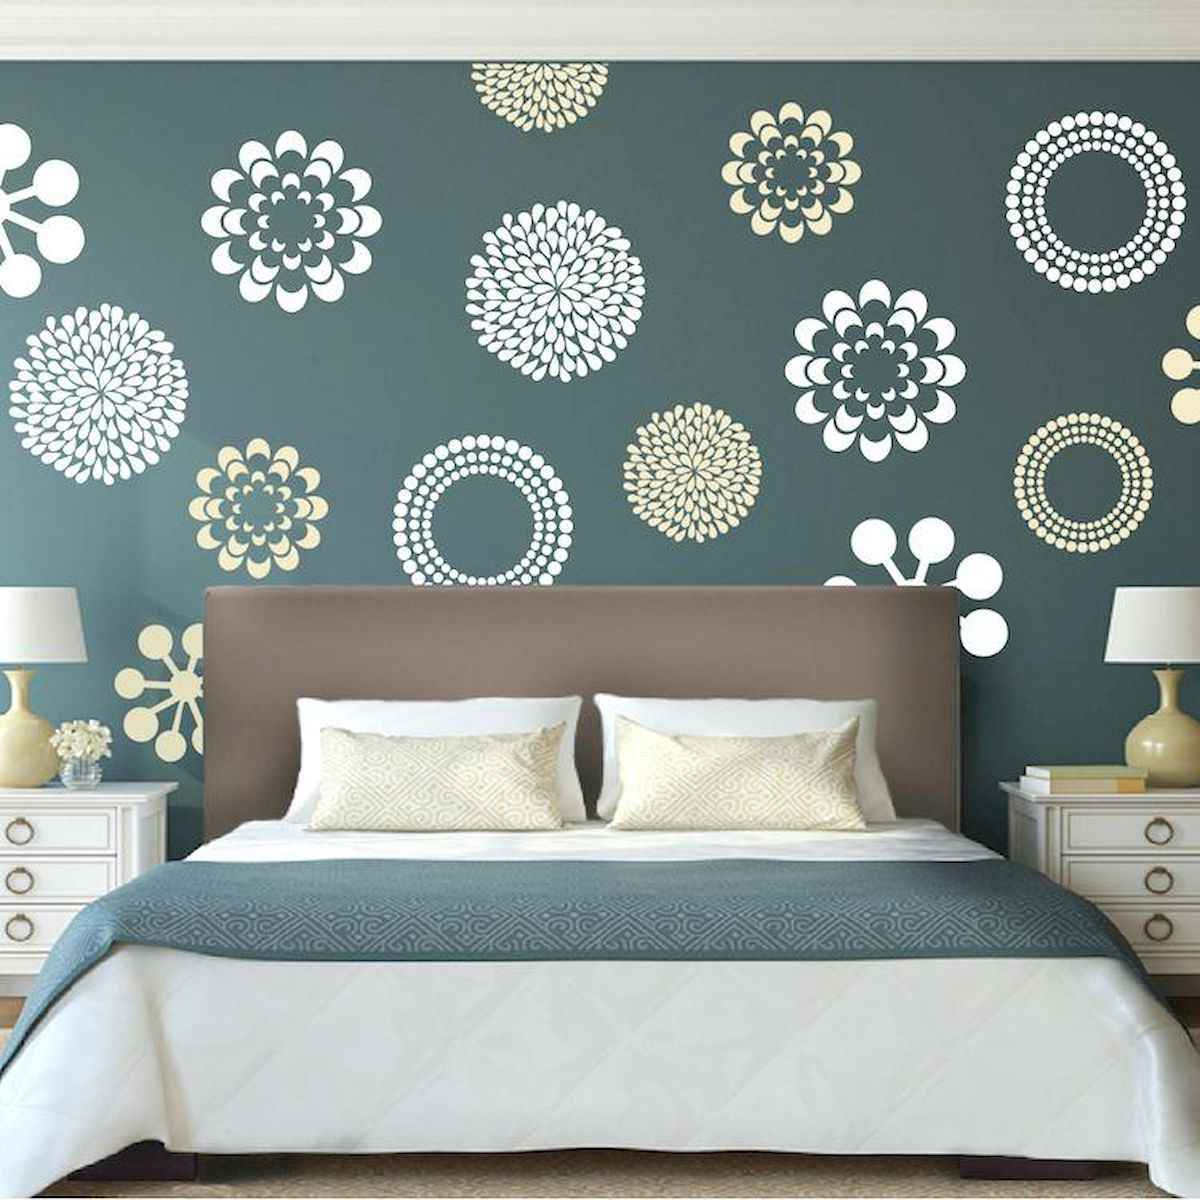 40 Awesome Wall Painting Ideas For Home (5)